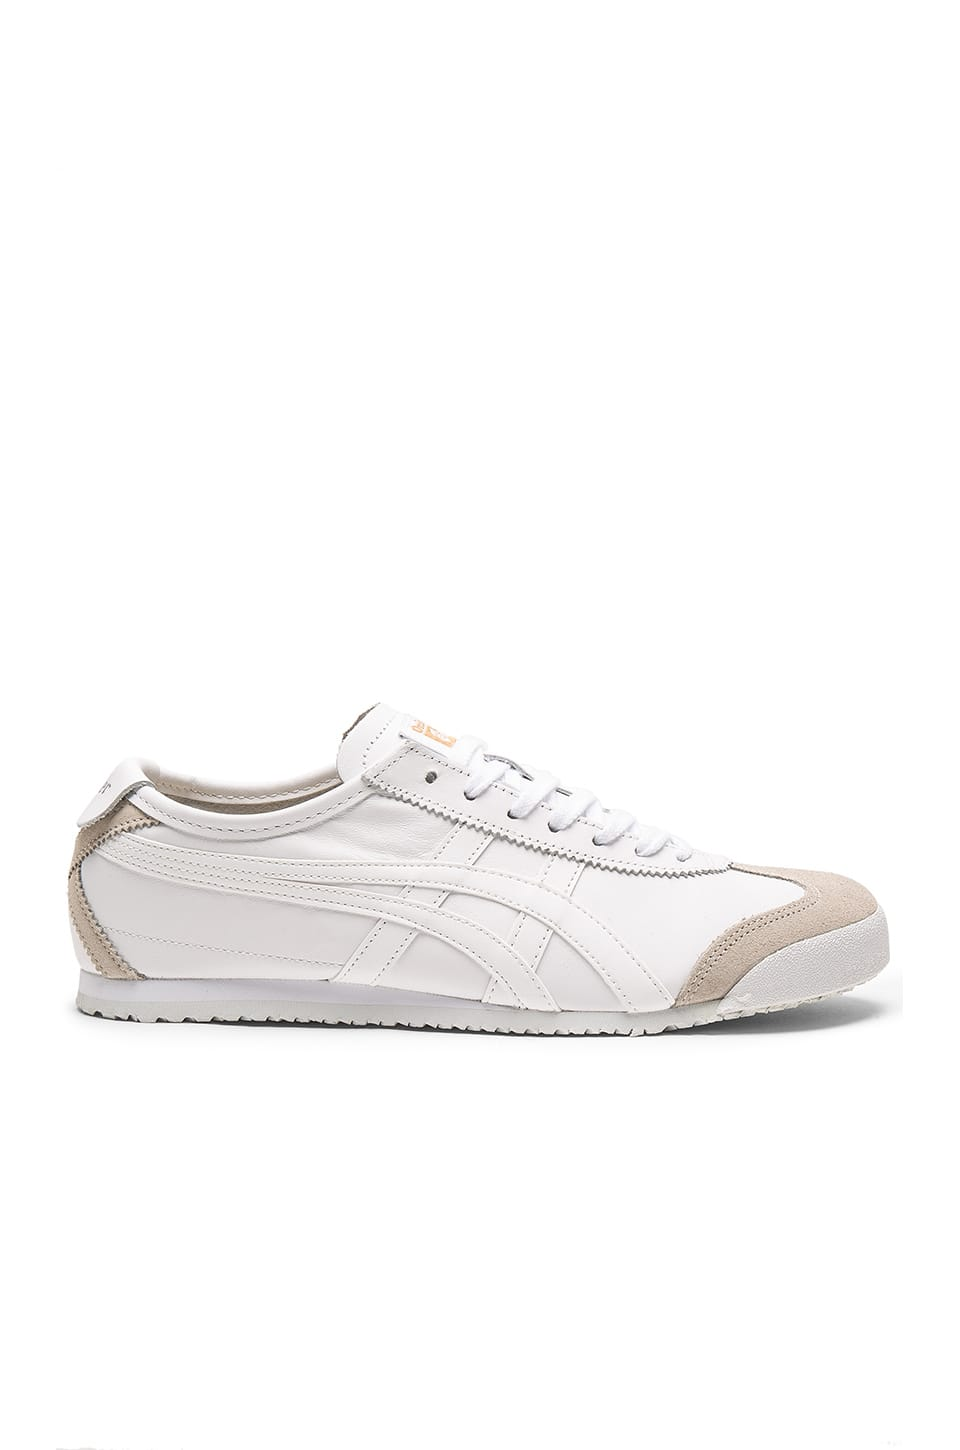 huge selection of d0f7b 85adf Mexico 66, Onitsuka Tiger